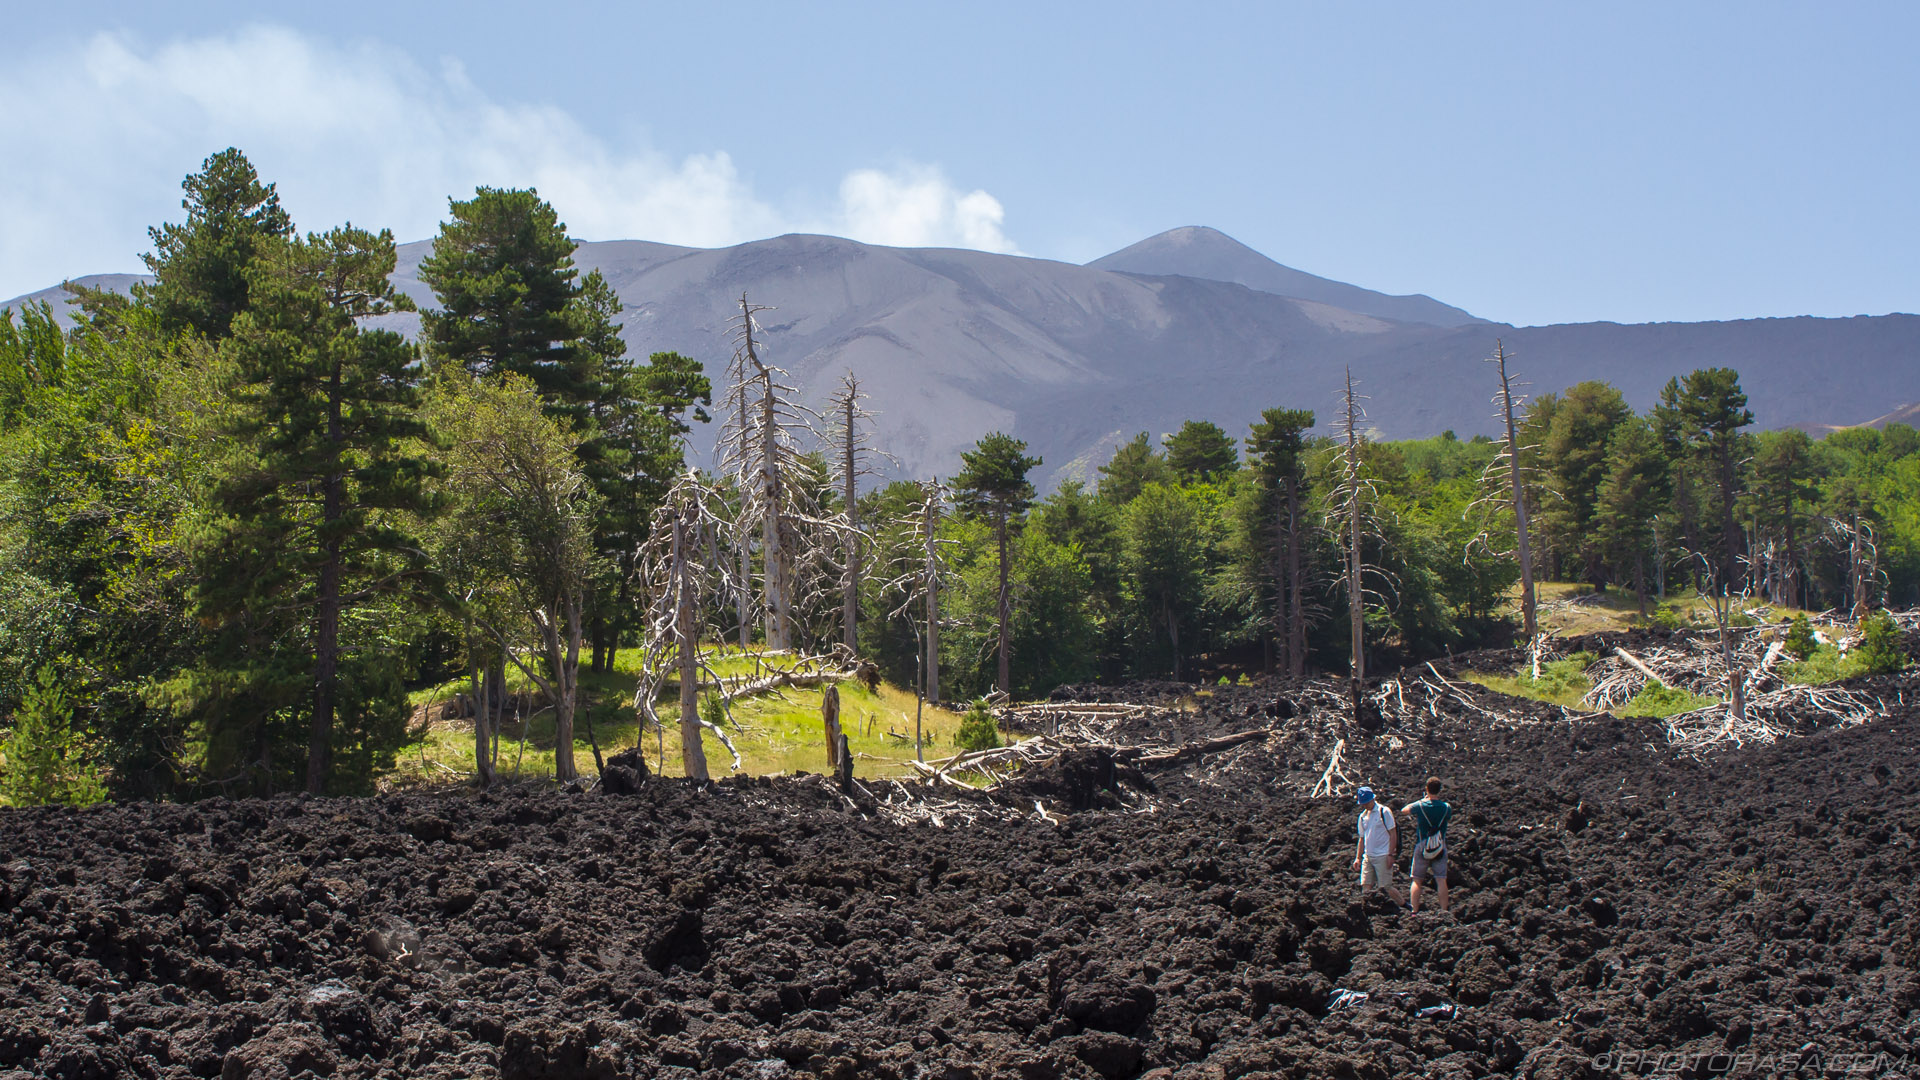 https://photorasa.com/mount-etna/aftermath-of-2002-lava-flow/